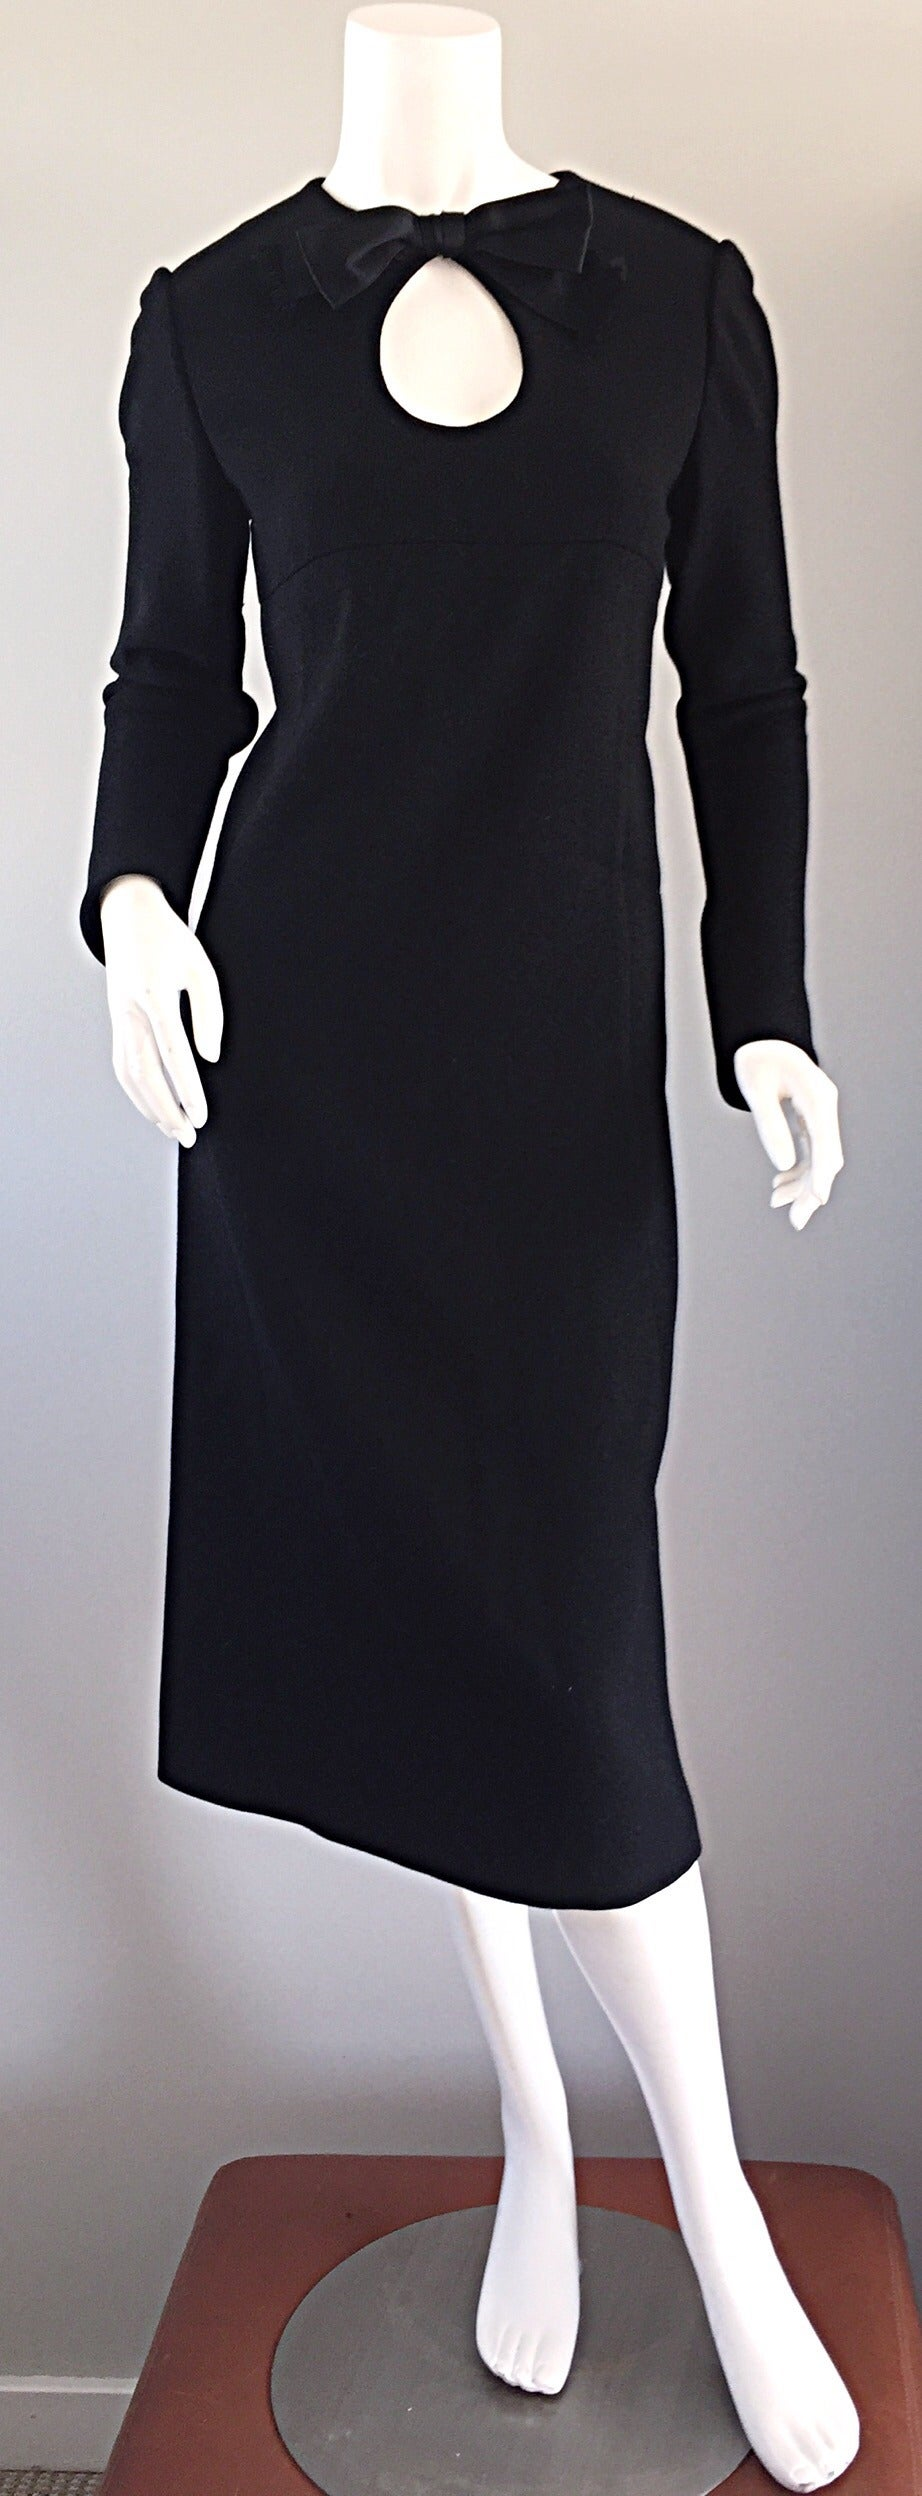 Iconic Vintage Pierre Cardin 1960s 60s Black Wool Cut - Out Dress w/ Bow For Sale 1